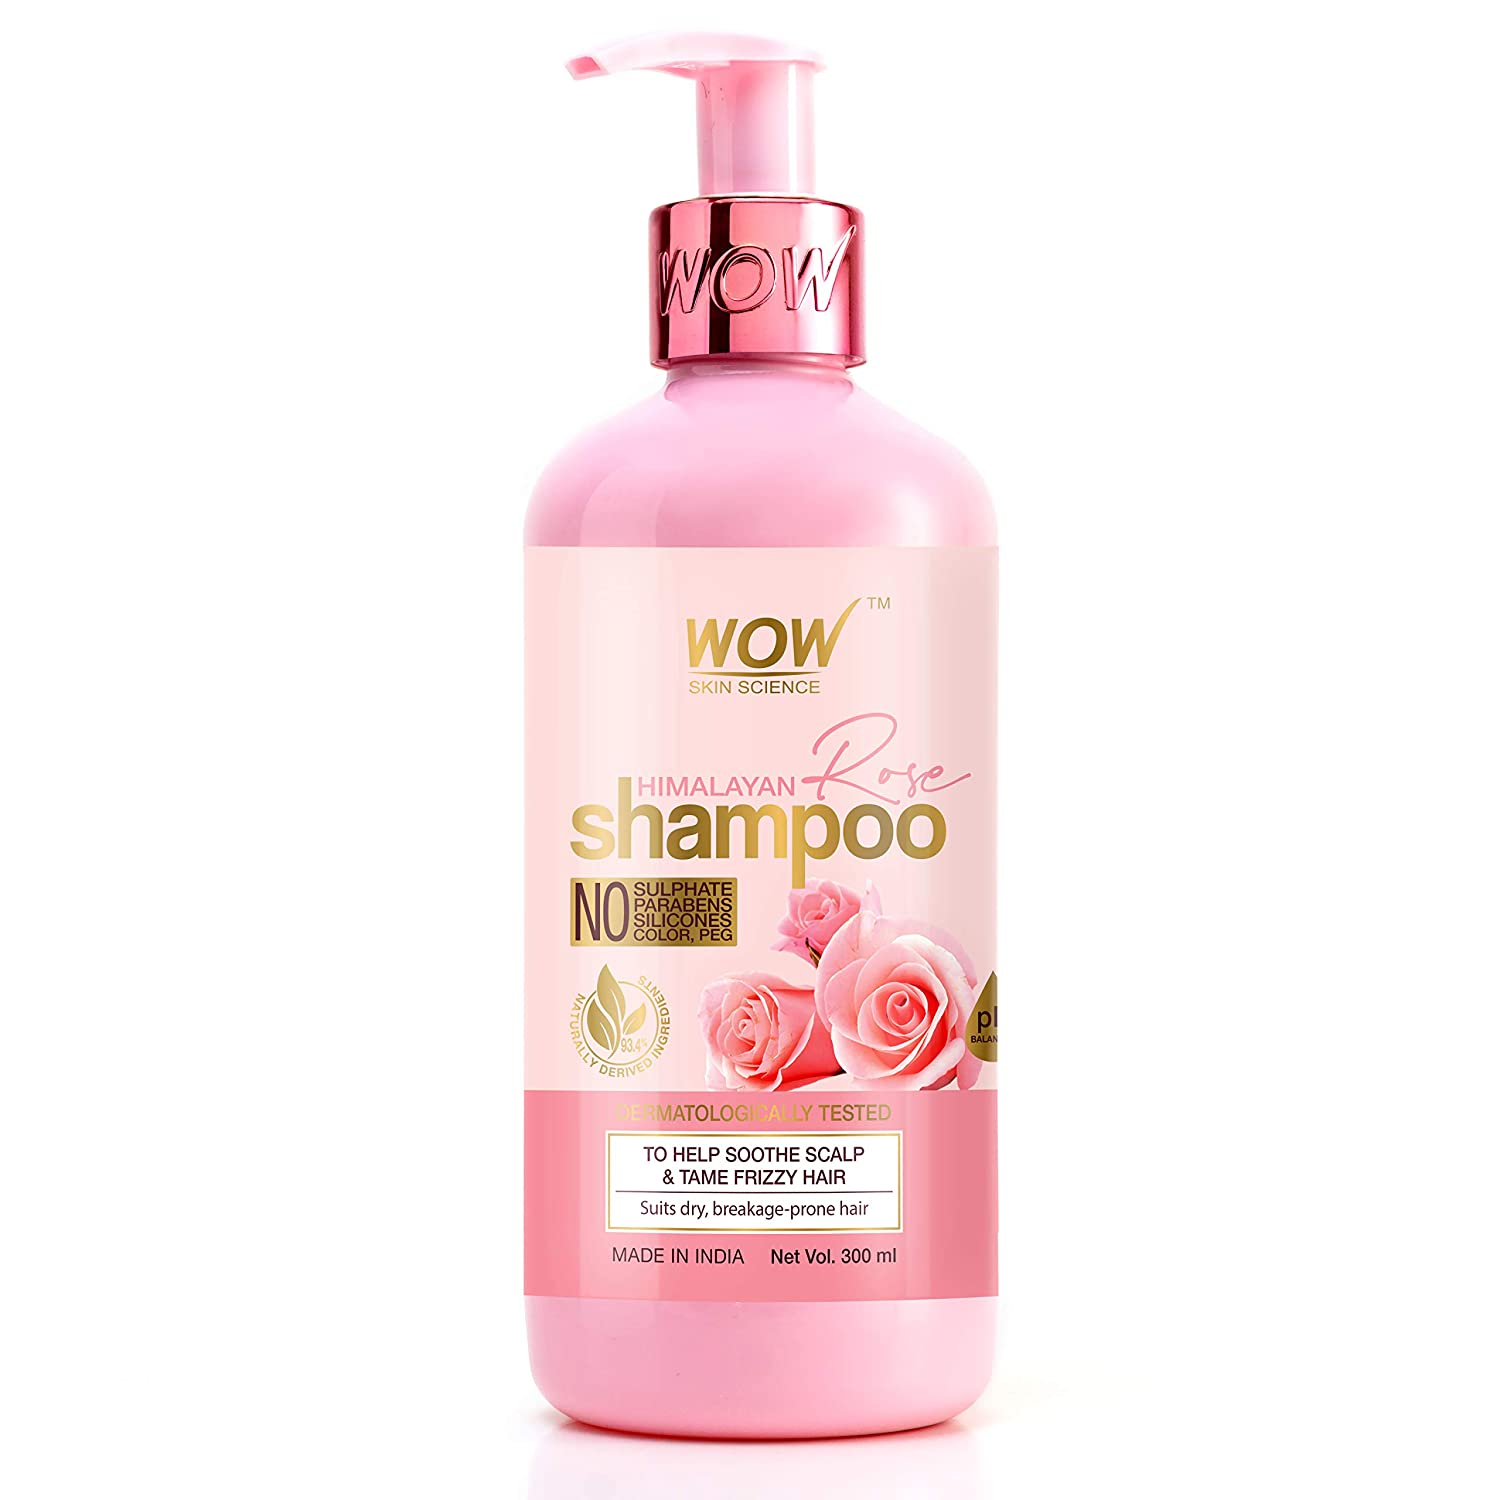 WOW Skin Science Himalayan Rose Shampoo with Rose Hydrosol, Coconut Oil, Almond Oil & Argan Oil - For Volumnising Hair, Anti Smelly Scalp - No Parabens, Sulphate, Silicones, Color & PEG, 300 ml